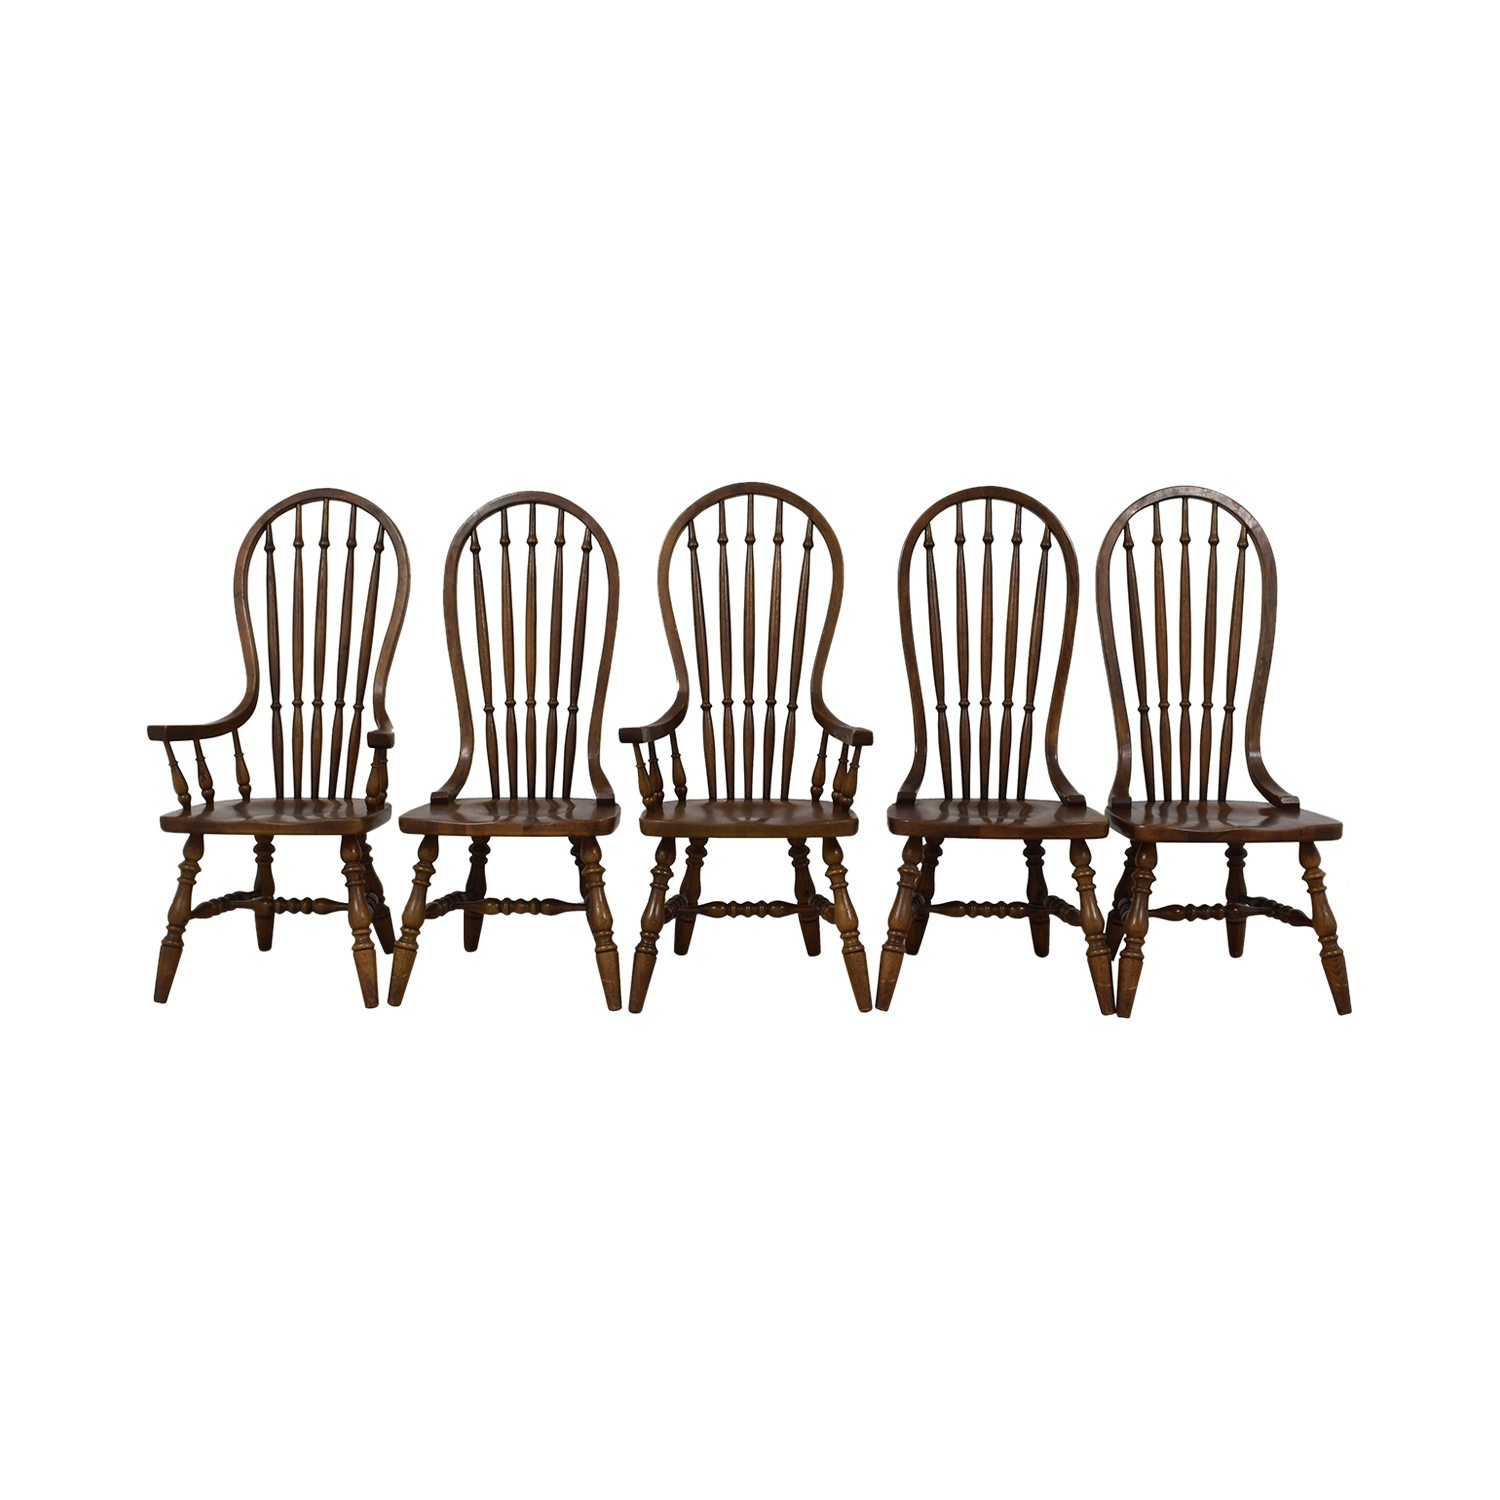 [%90% Off – Antique Oak Spindle Dining Chairs / Chairs Regarding Newest Second Hand Oak Dining Chairs|Second Hand Oak Dining Chairs Within Famous 90% Off – Antique Oak Spindle Dining Chairs / Chairs|Preferred Second Hand Oak Dining Chairs Inside 90% Off – Antique Oak Spindle Dining Chairs / Chairs|Trendy 90% Off – Antique Oak Spindle Dining Chairs / Chairs For Second Hand Oak Dining Chairs%] (View 10 of 25)